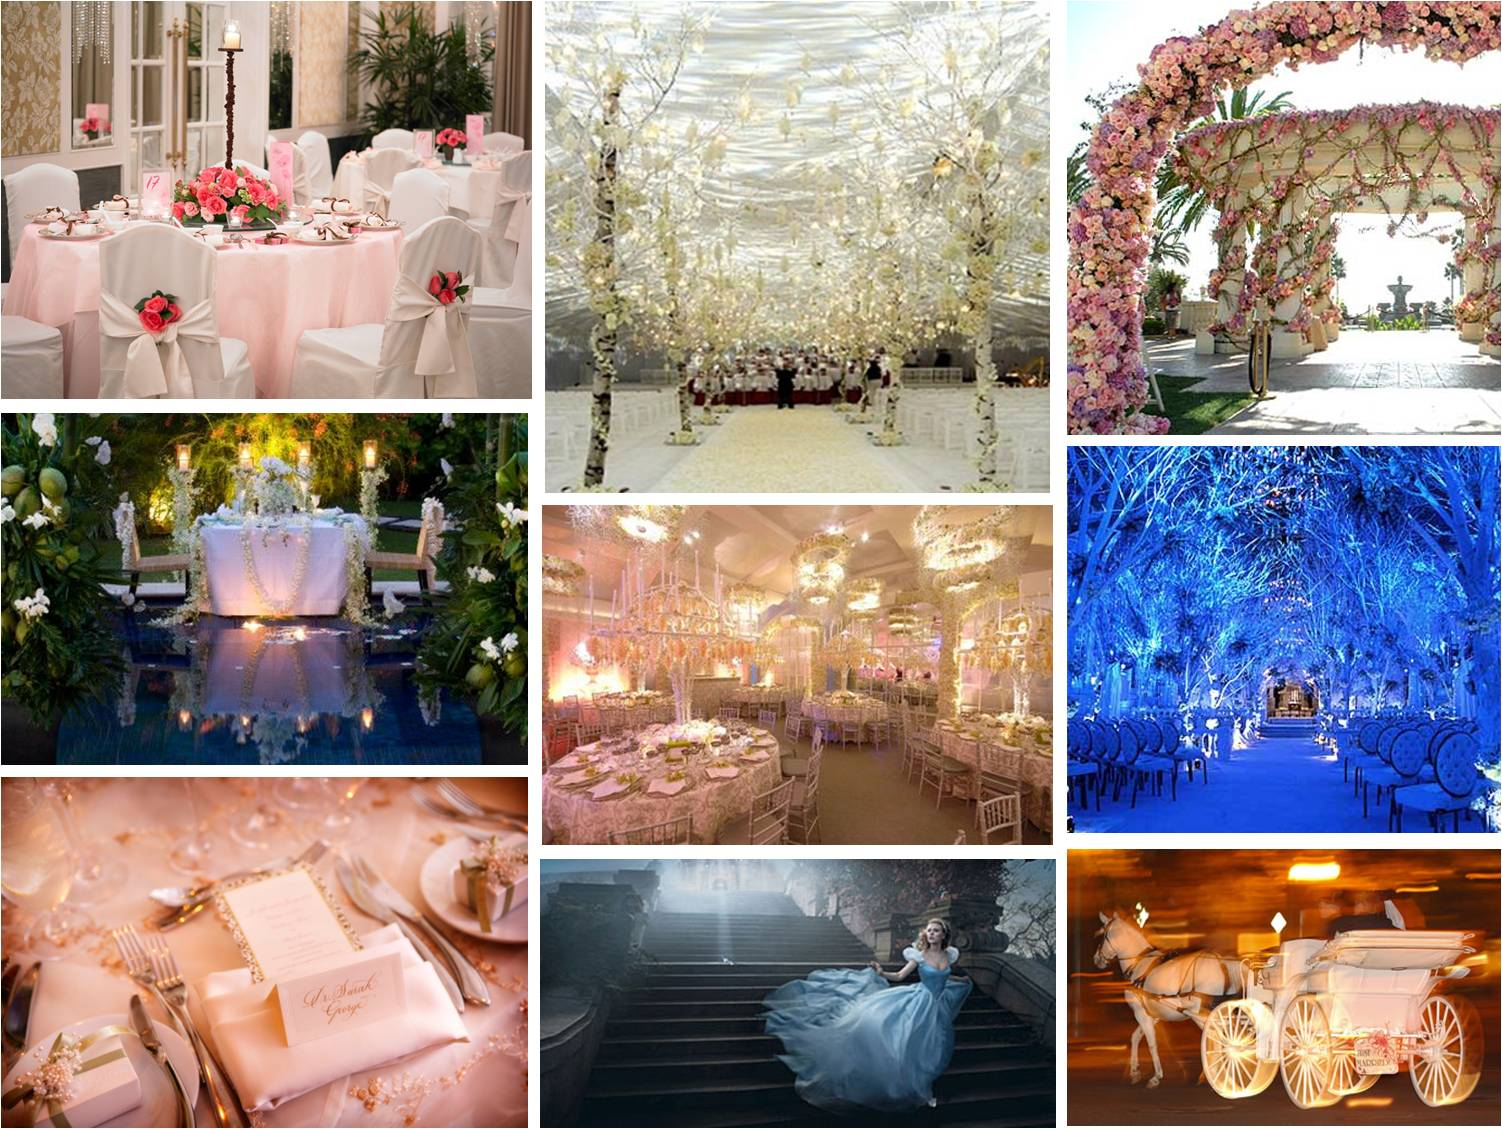 Fairytale Wedding Themes Choice Image Wedding Decoration Ideas Fairytale  Wedding Theme Gallery Wedding Decoration Ideas Fairy